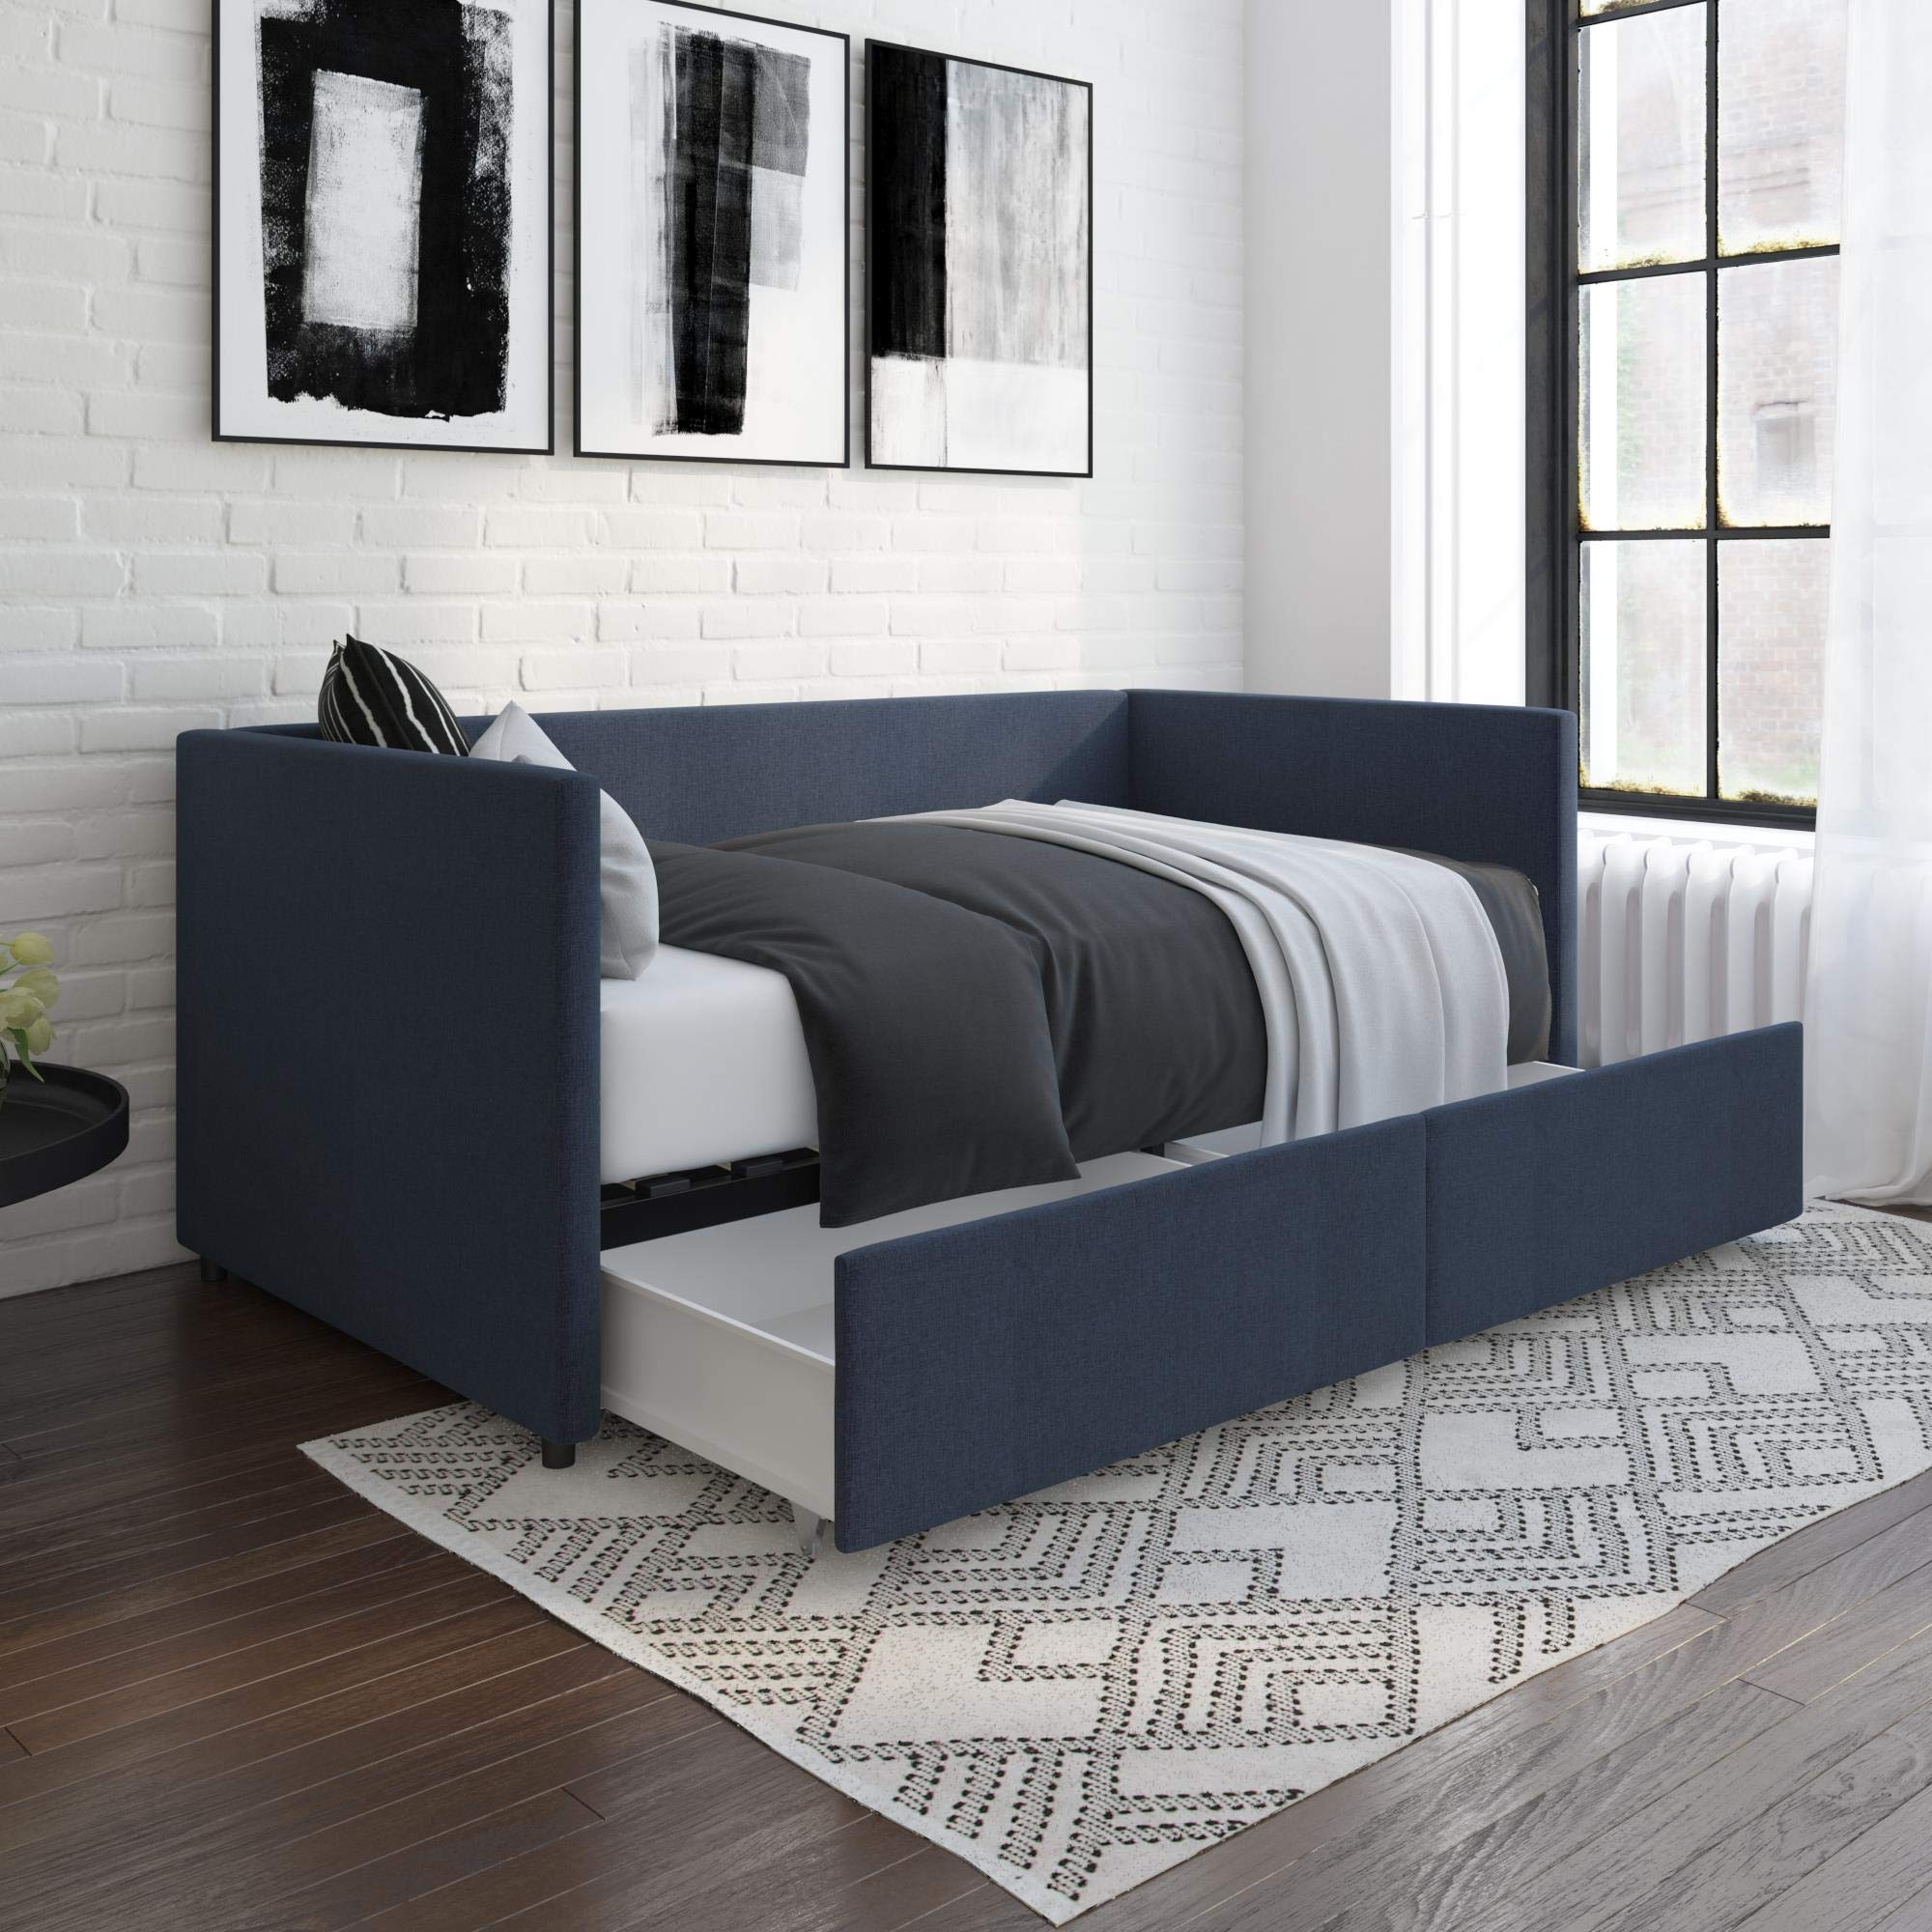 DHP Theo Urban Daybed with Storage Drawers, Small Space Furniture, Blue Linen by DHP